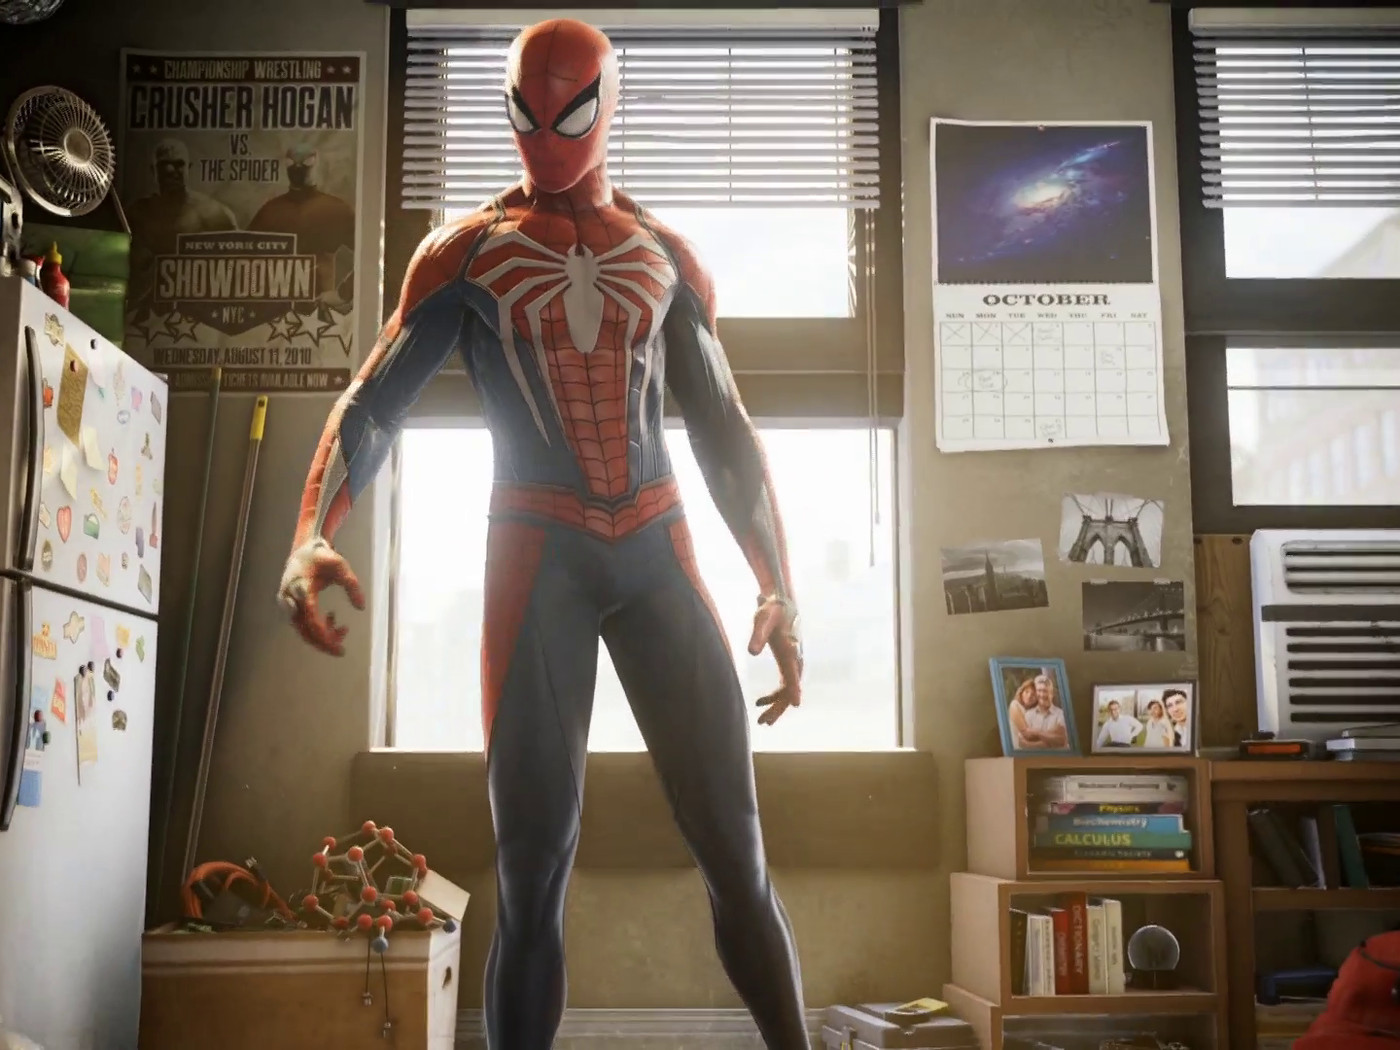 43e029a67e Marvel's Spider-Man on PS4 gets a permanent price drop - Polygon